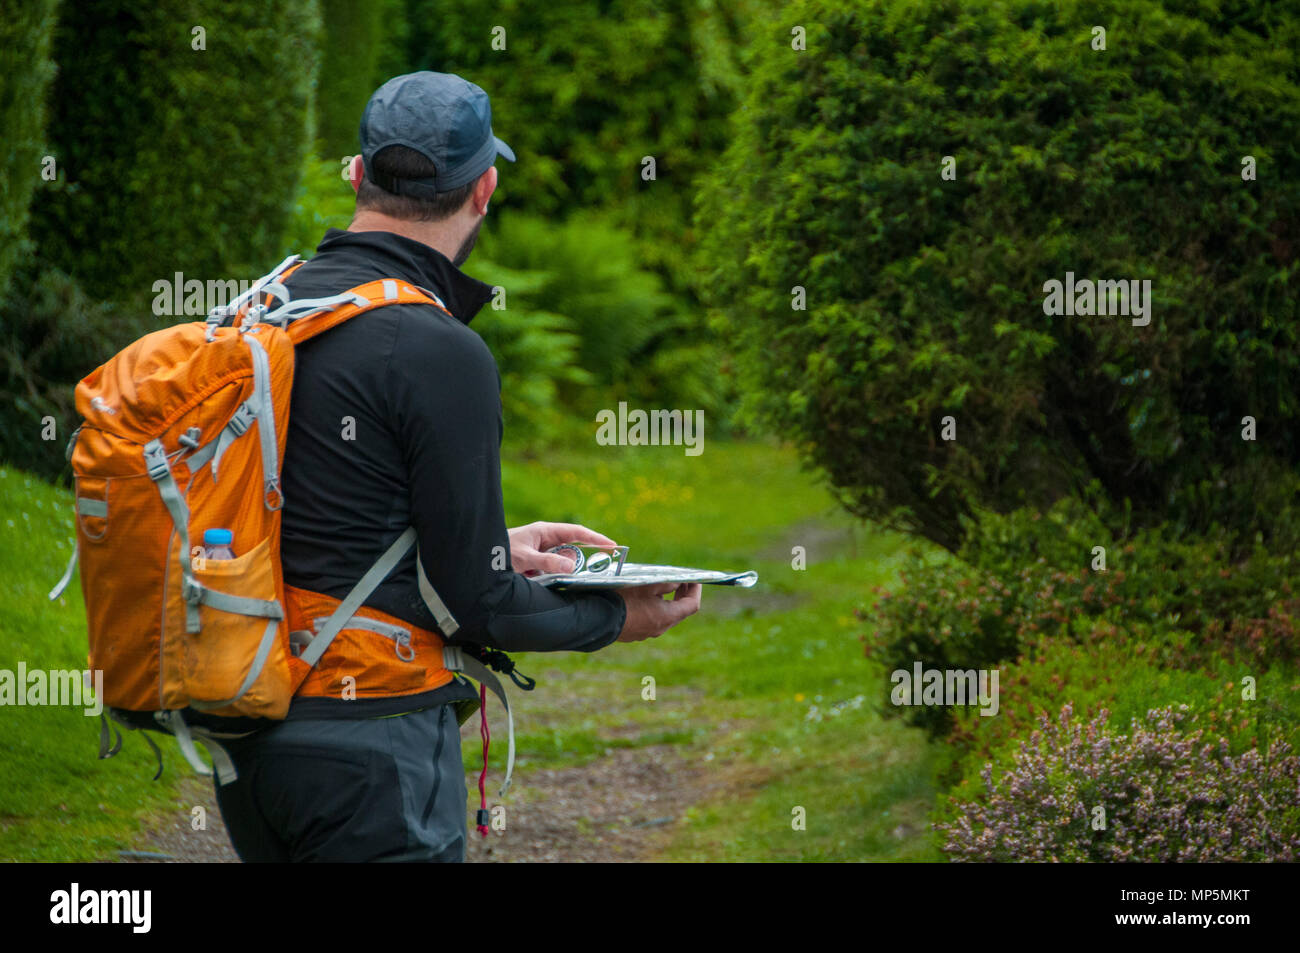 Hiker using map and compass for navigation - Stock Image